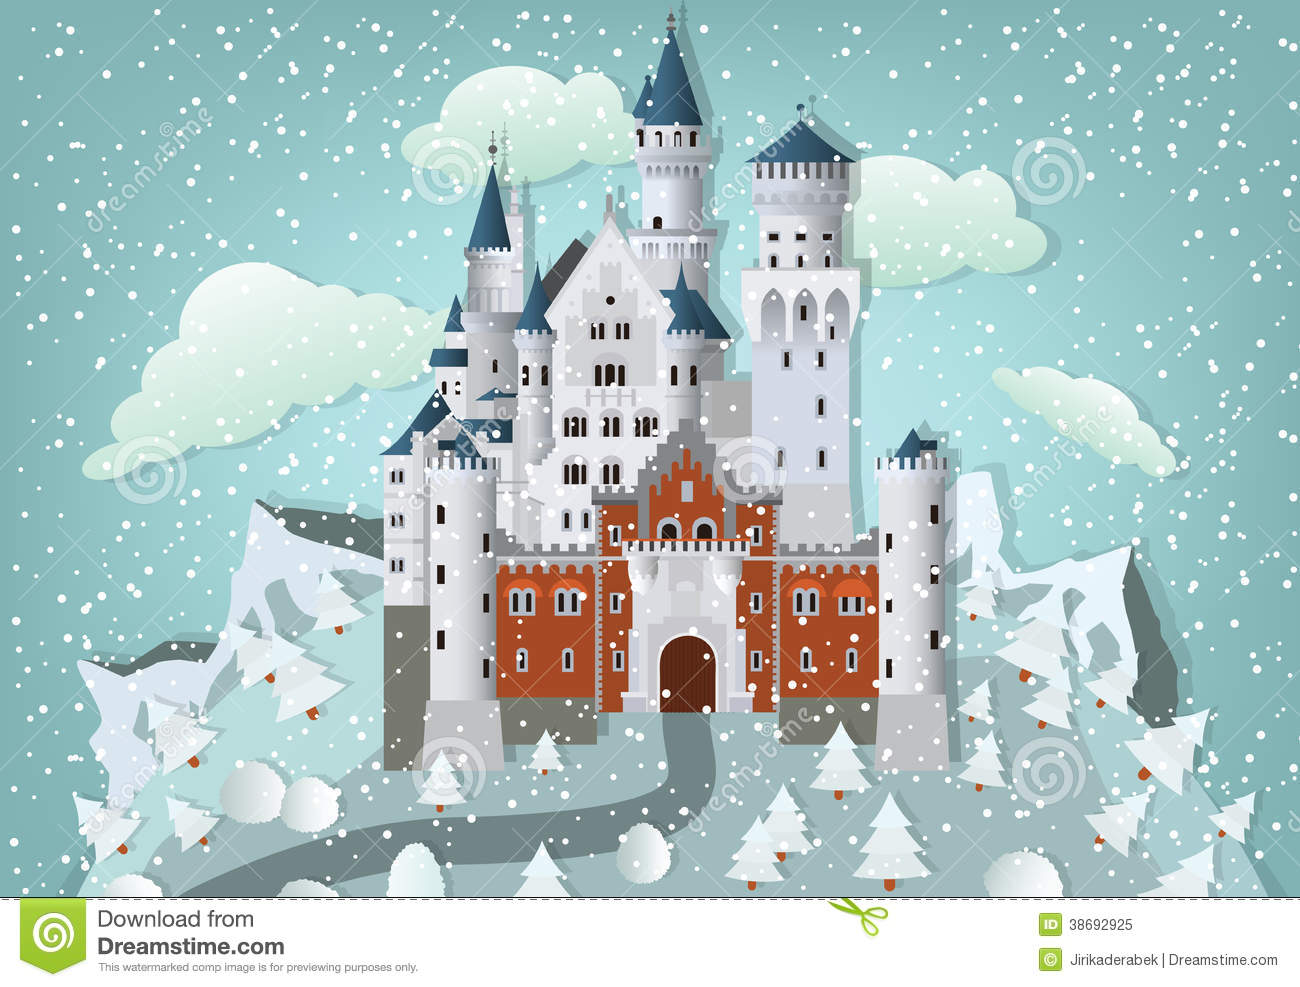 fairytale castle in winter royalty free stock photo. Black Bedroom Furniture Sets. Home Design Ideas